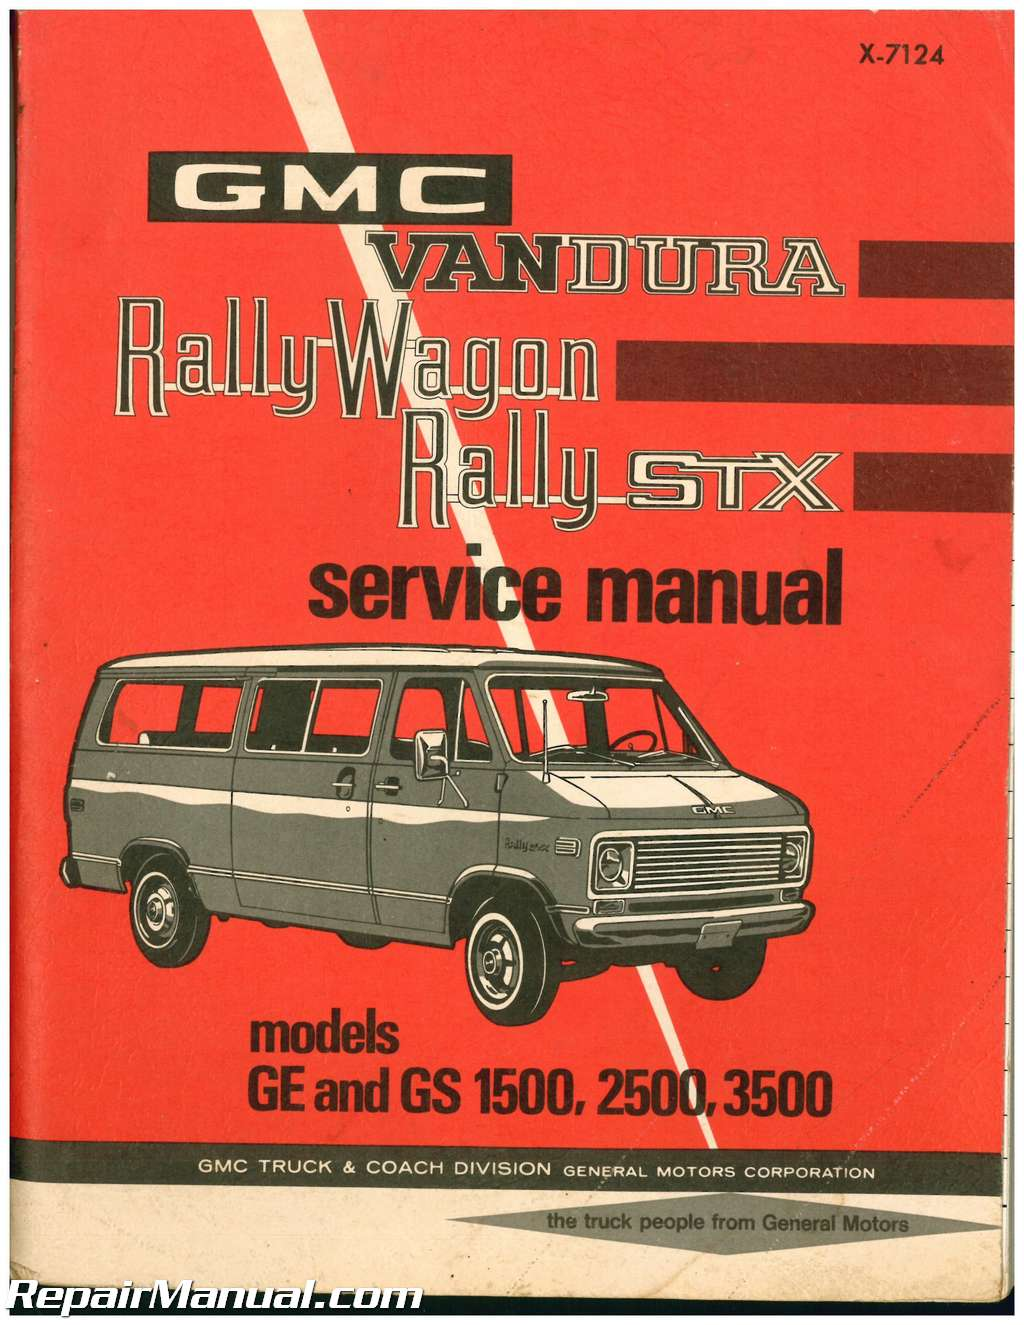 used 1971 gmc vandura rally wagon rally stx service manual ebay rh ebay com GMC Vandura 2500 Parts GMC Vandura 2500 Conversion Interior